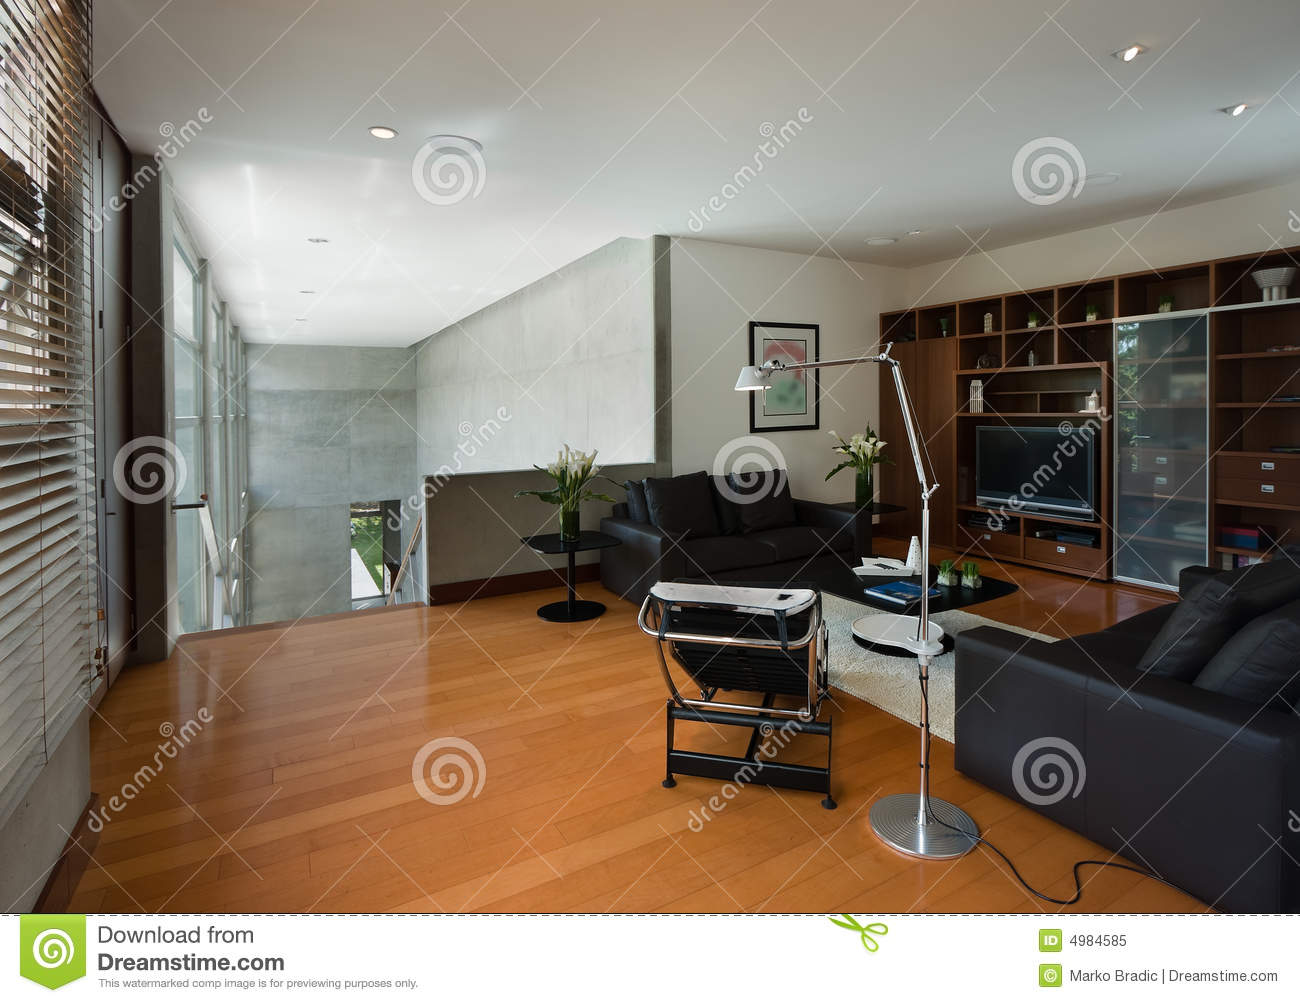 modern home interior royalty free stock photo image 4984585 modern home interior royalty free stock photo